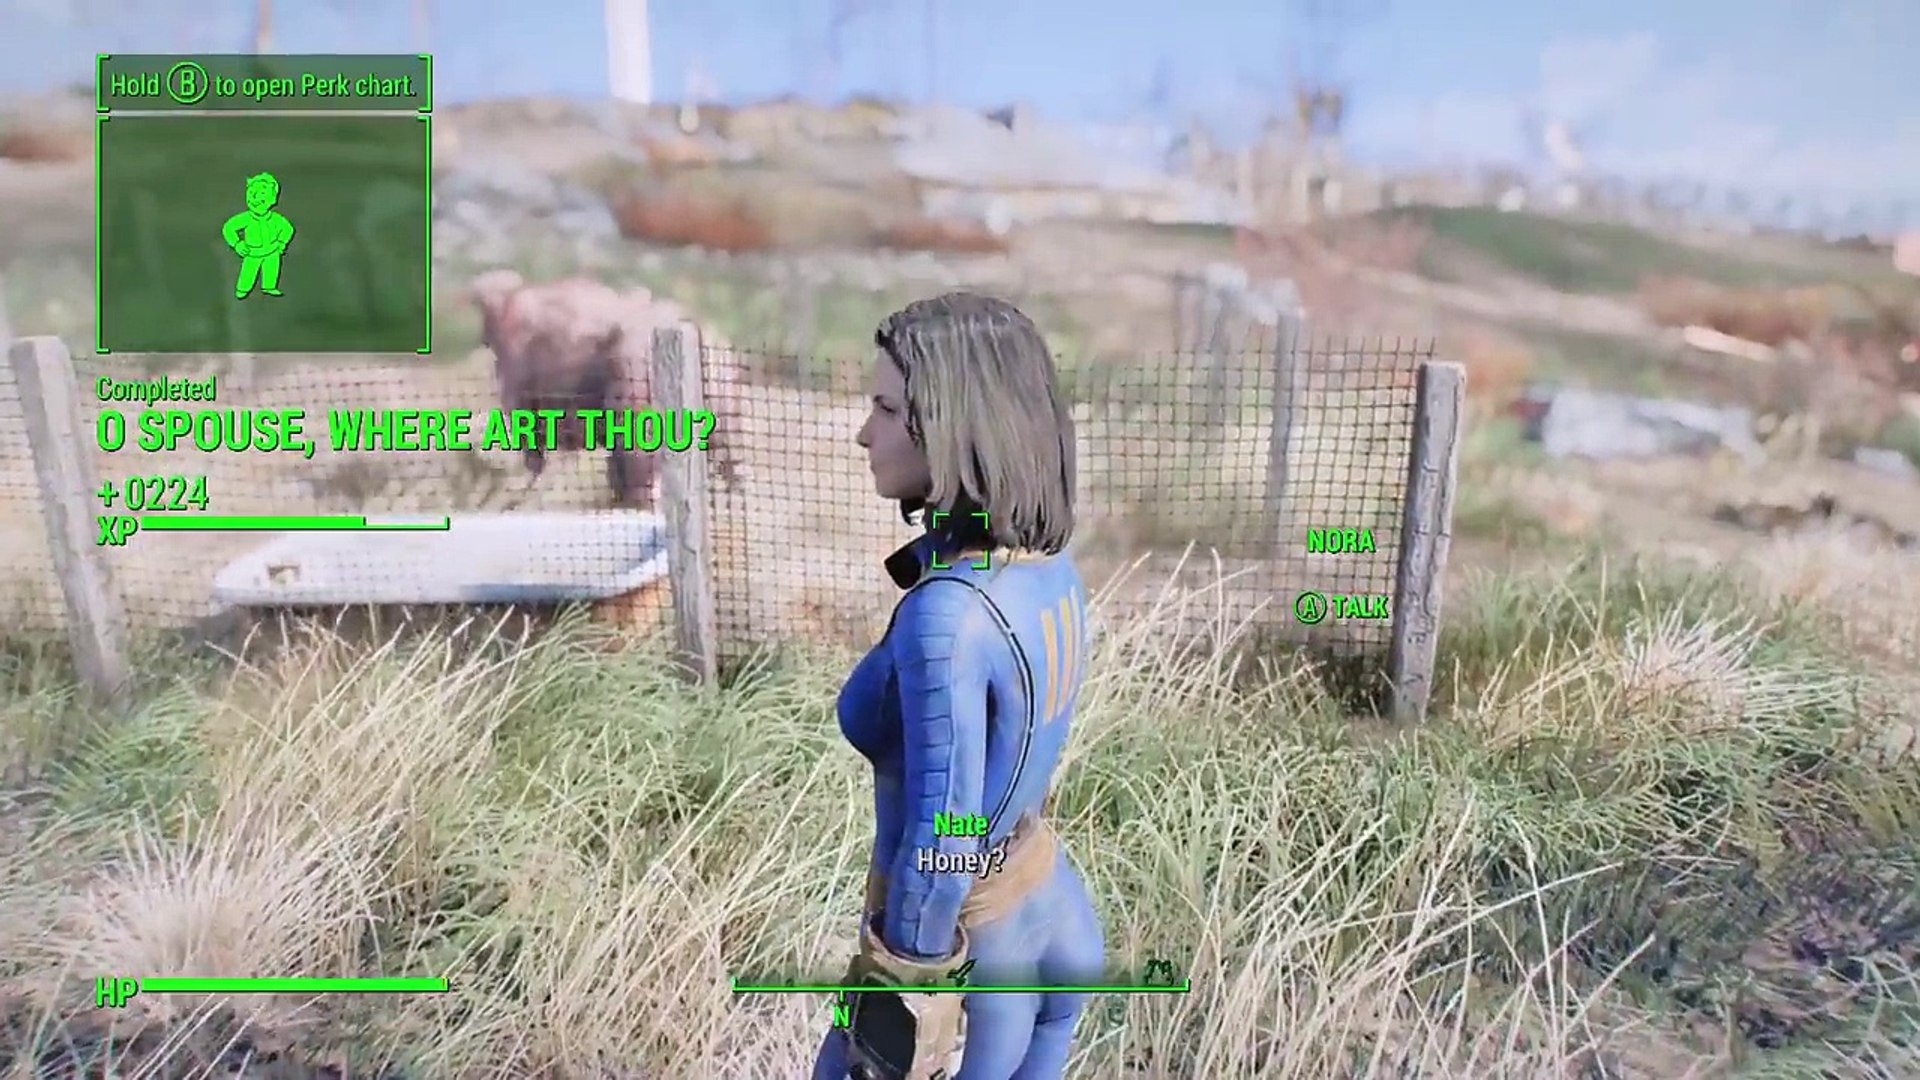 Fallout 4 - NORA SURVIVES - Finding Nora Quest & Meeting Codsworth Together  - Amazing Xbox & PC Mod